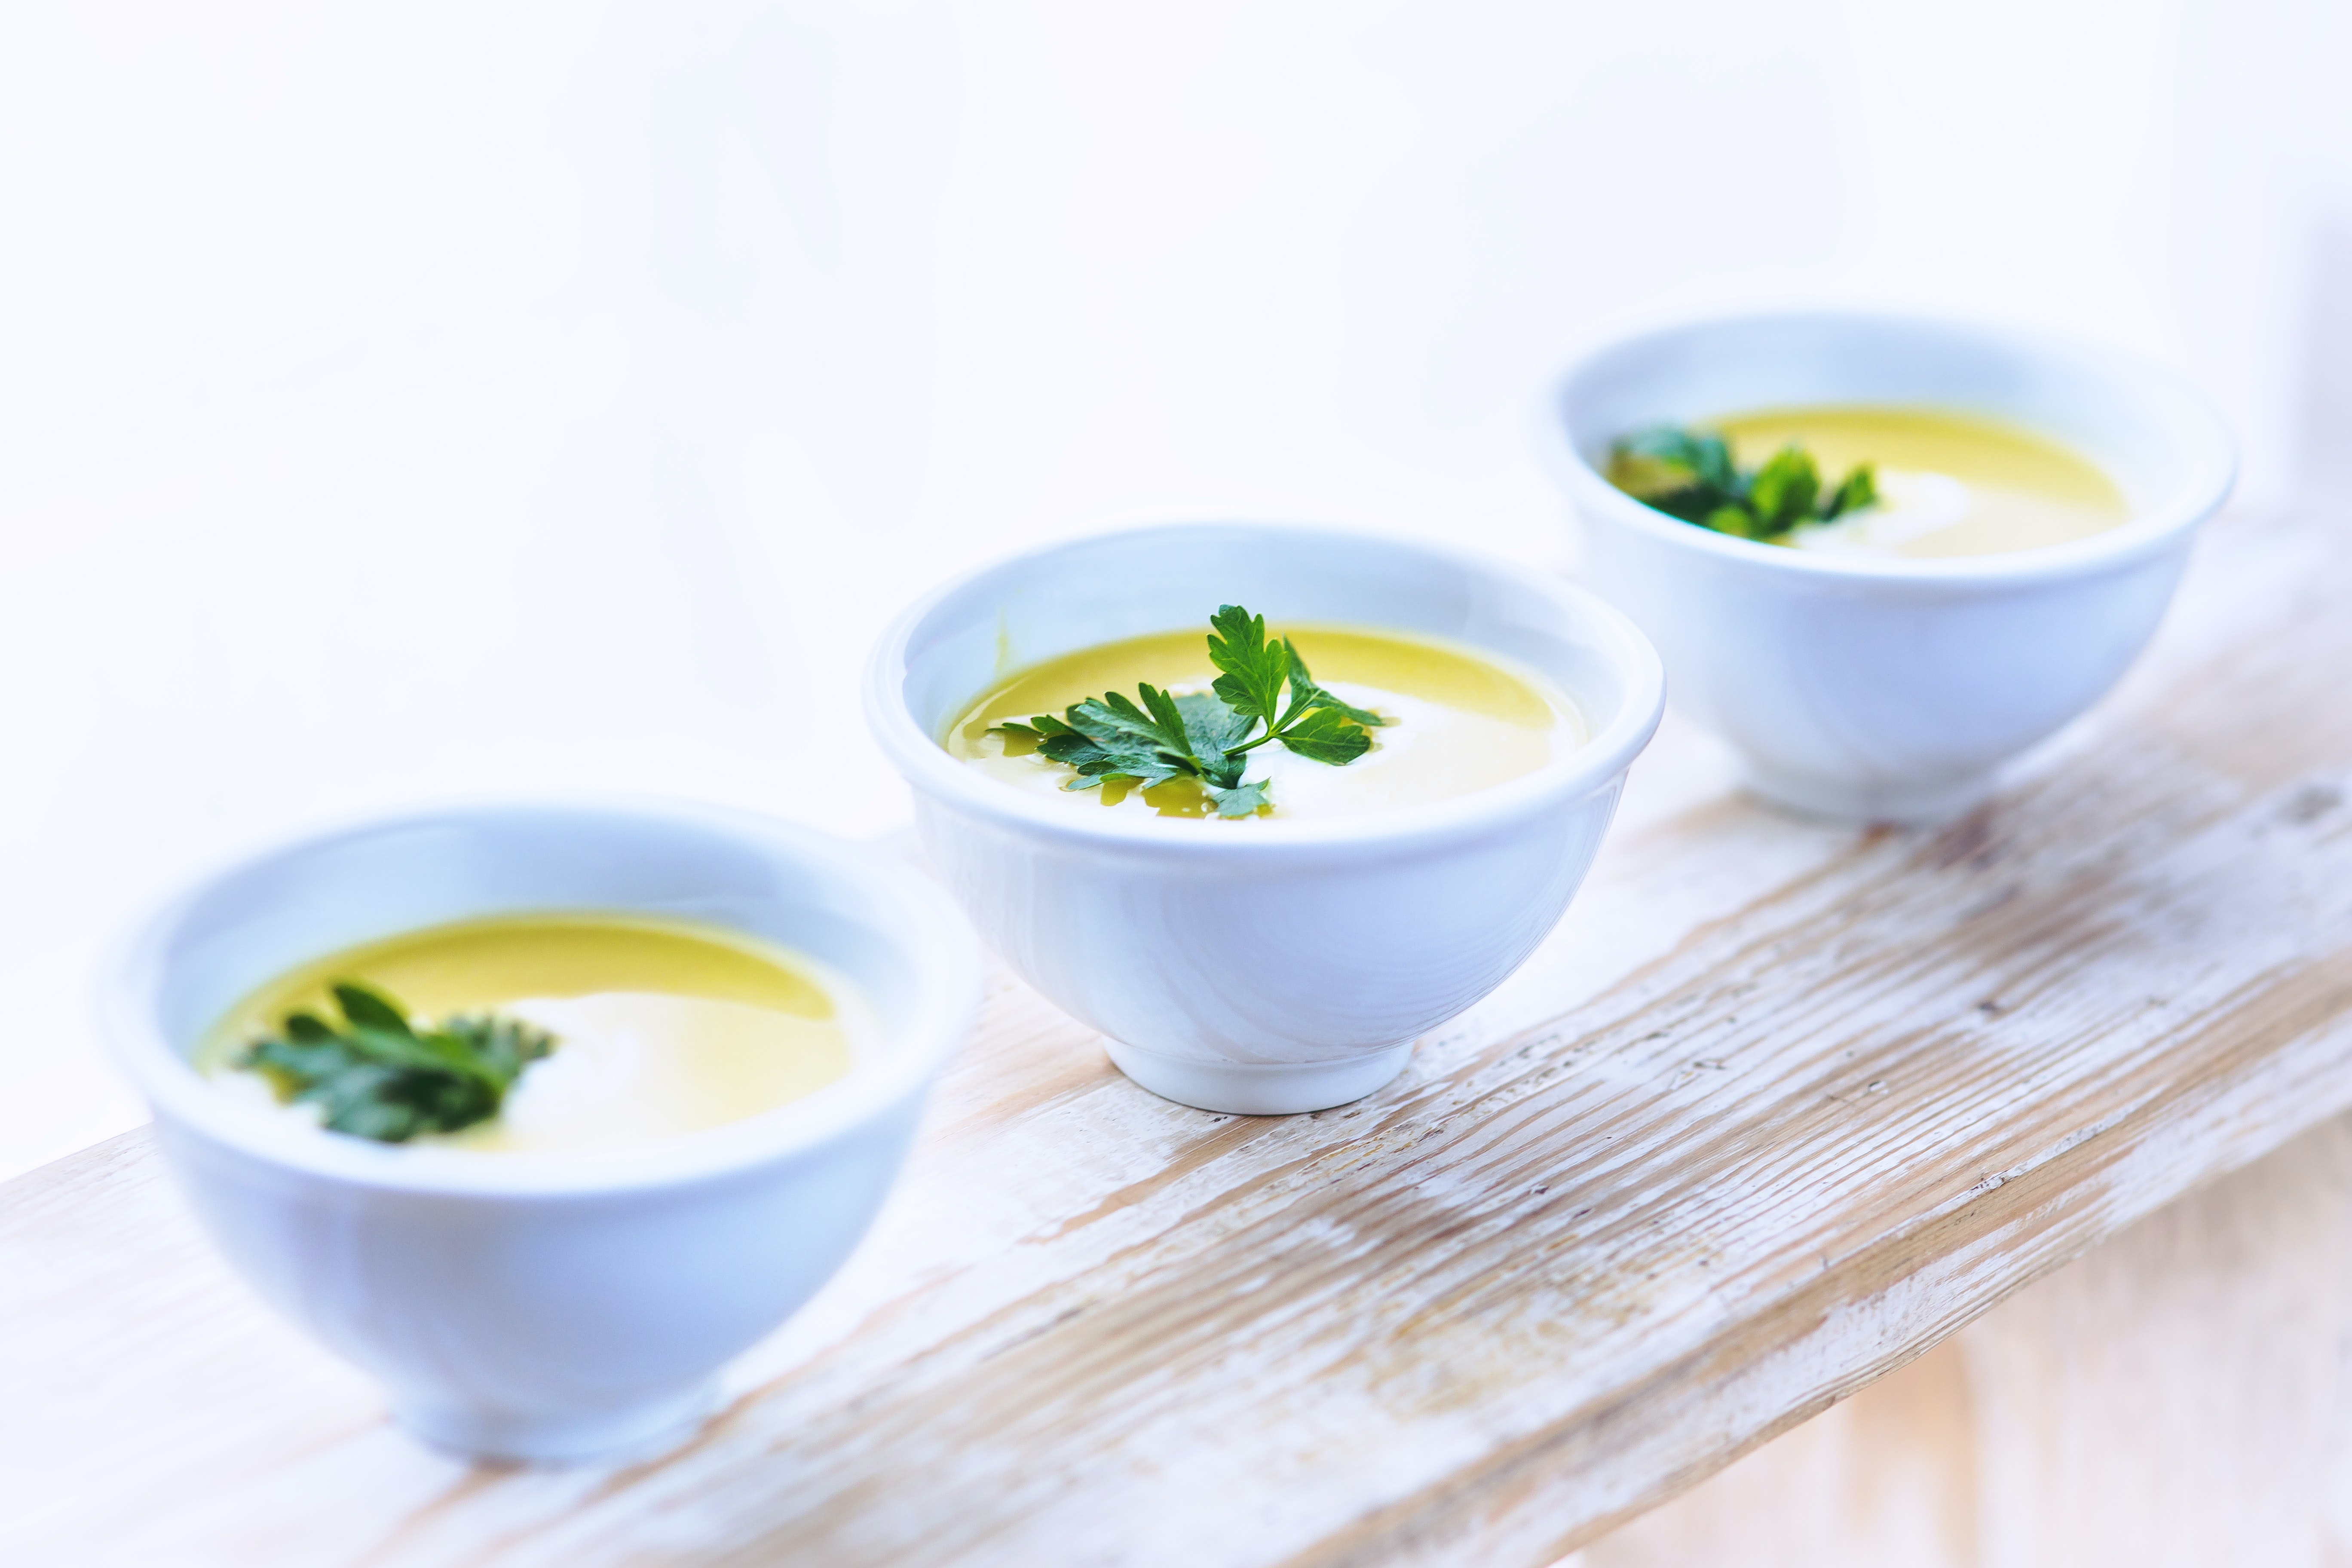 leek-and-potato-soup-with-parsley-5791